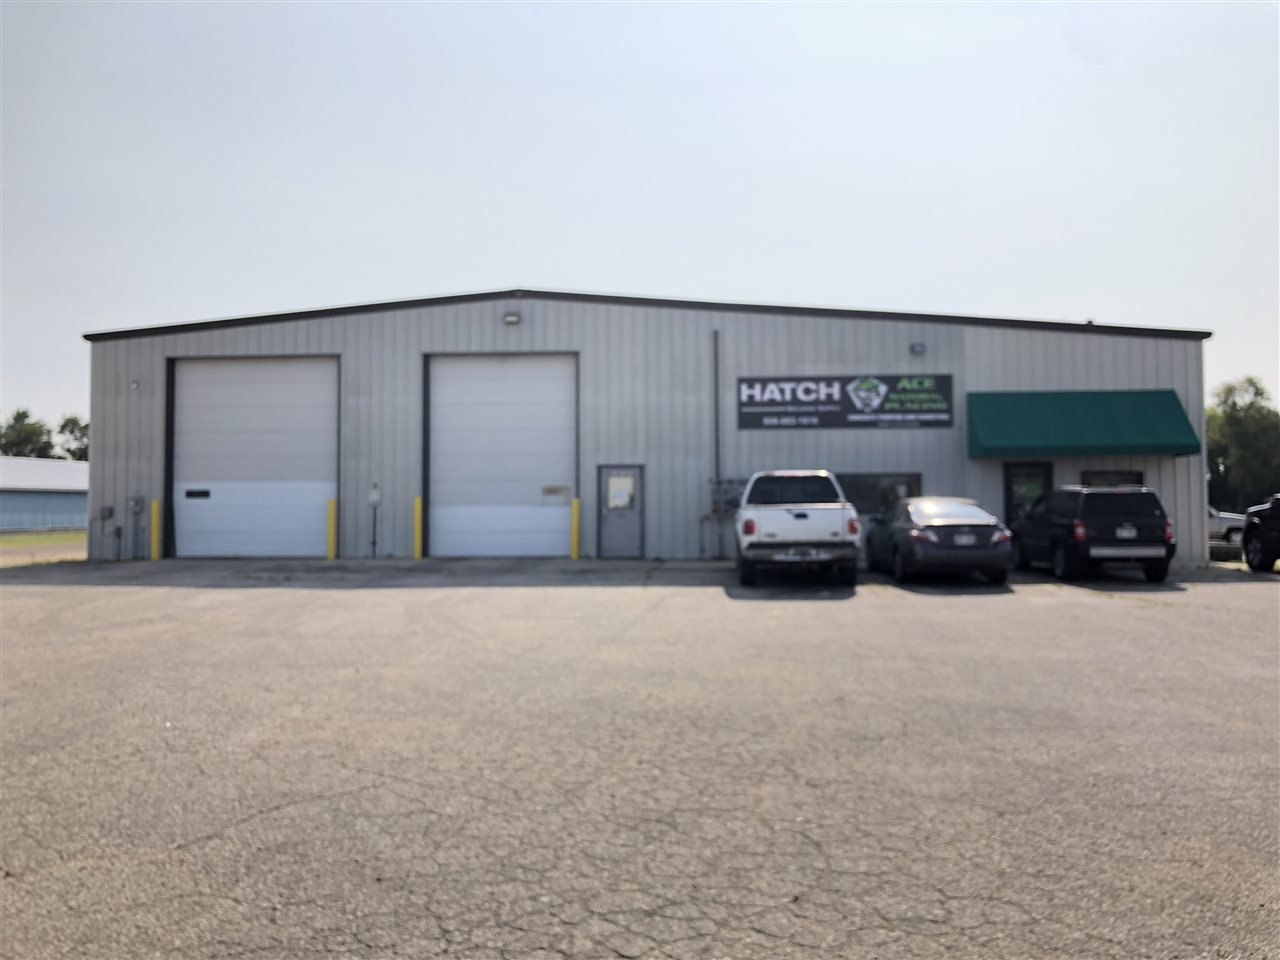 88' x 80' space with office and office bathroom and 2nd bathroom in the shop space. 6- 16'x 12' overhead garage doors, floor drains and 2 drive through bays. Parking lot space available. $3,800/ month rent.